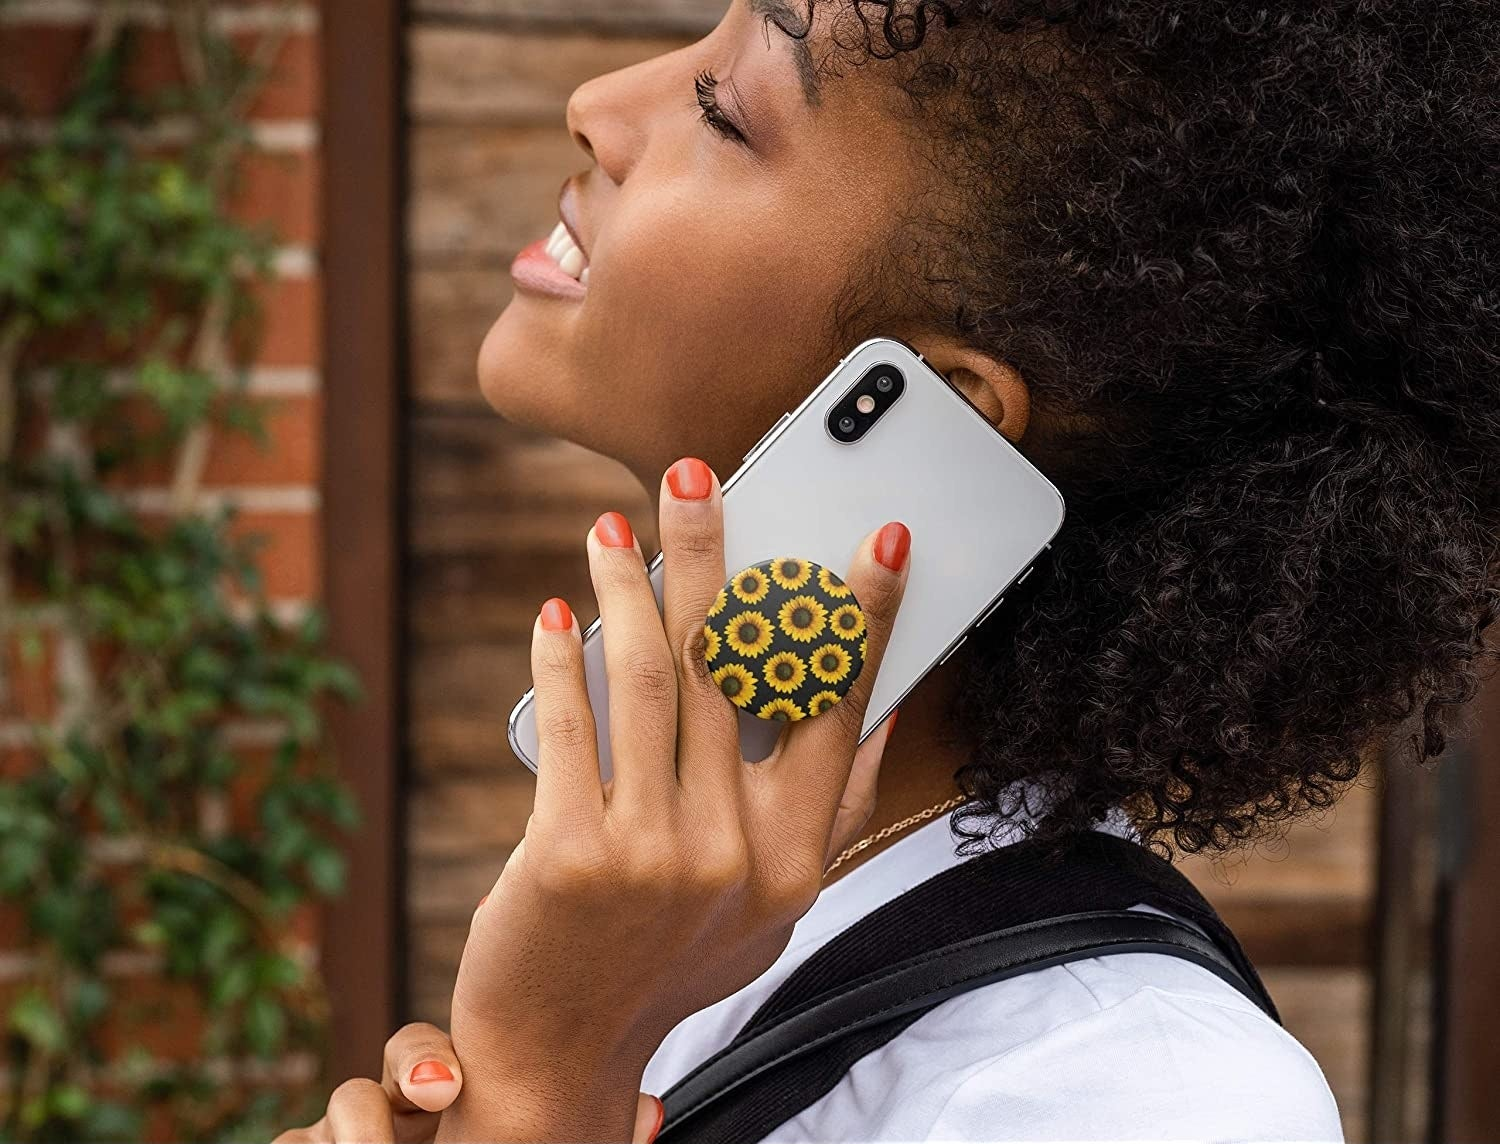 A person holding a phone to their ear that has a phone grip attached to the back